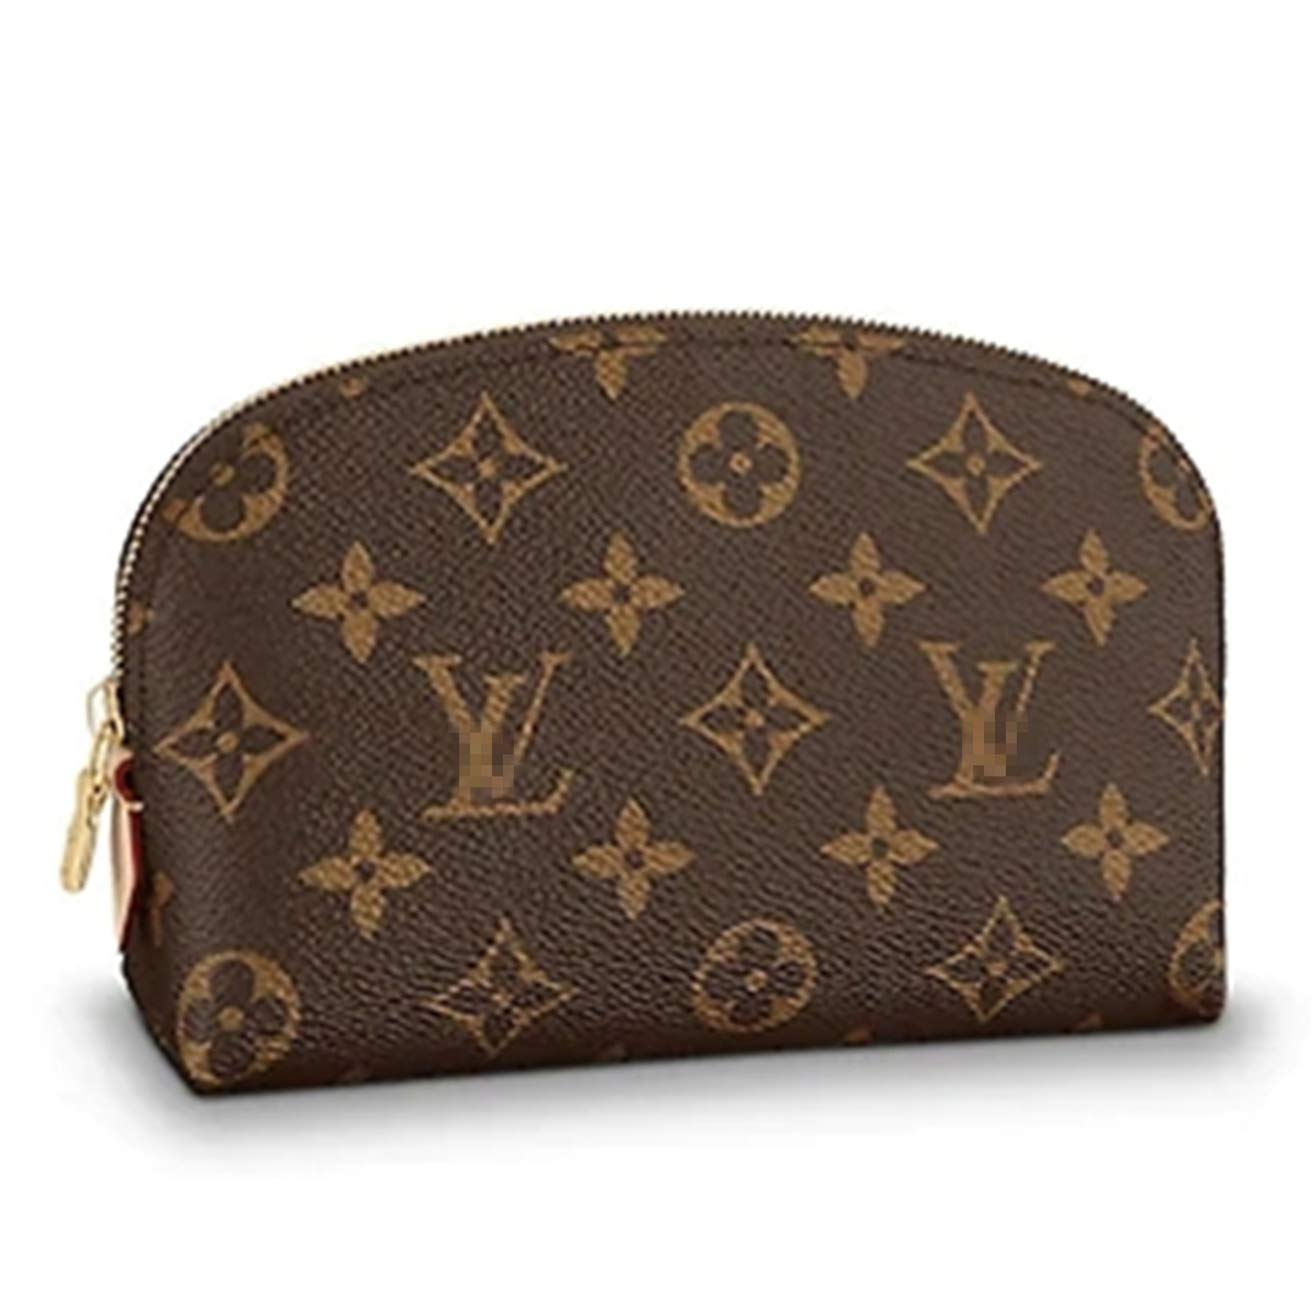 GOEYY BAG Monogram Canvas Cosmetic Bag with Zipper for Women